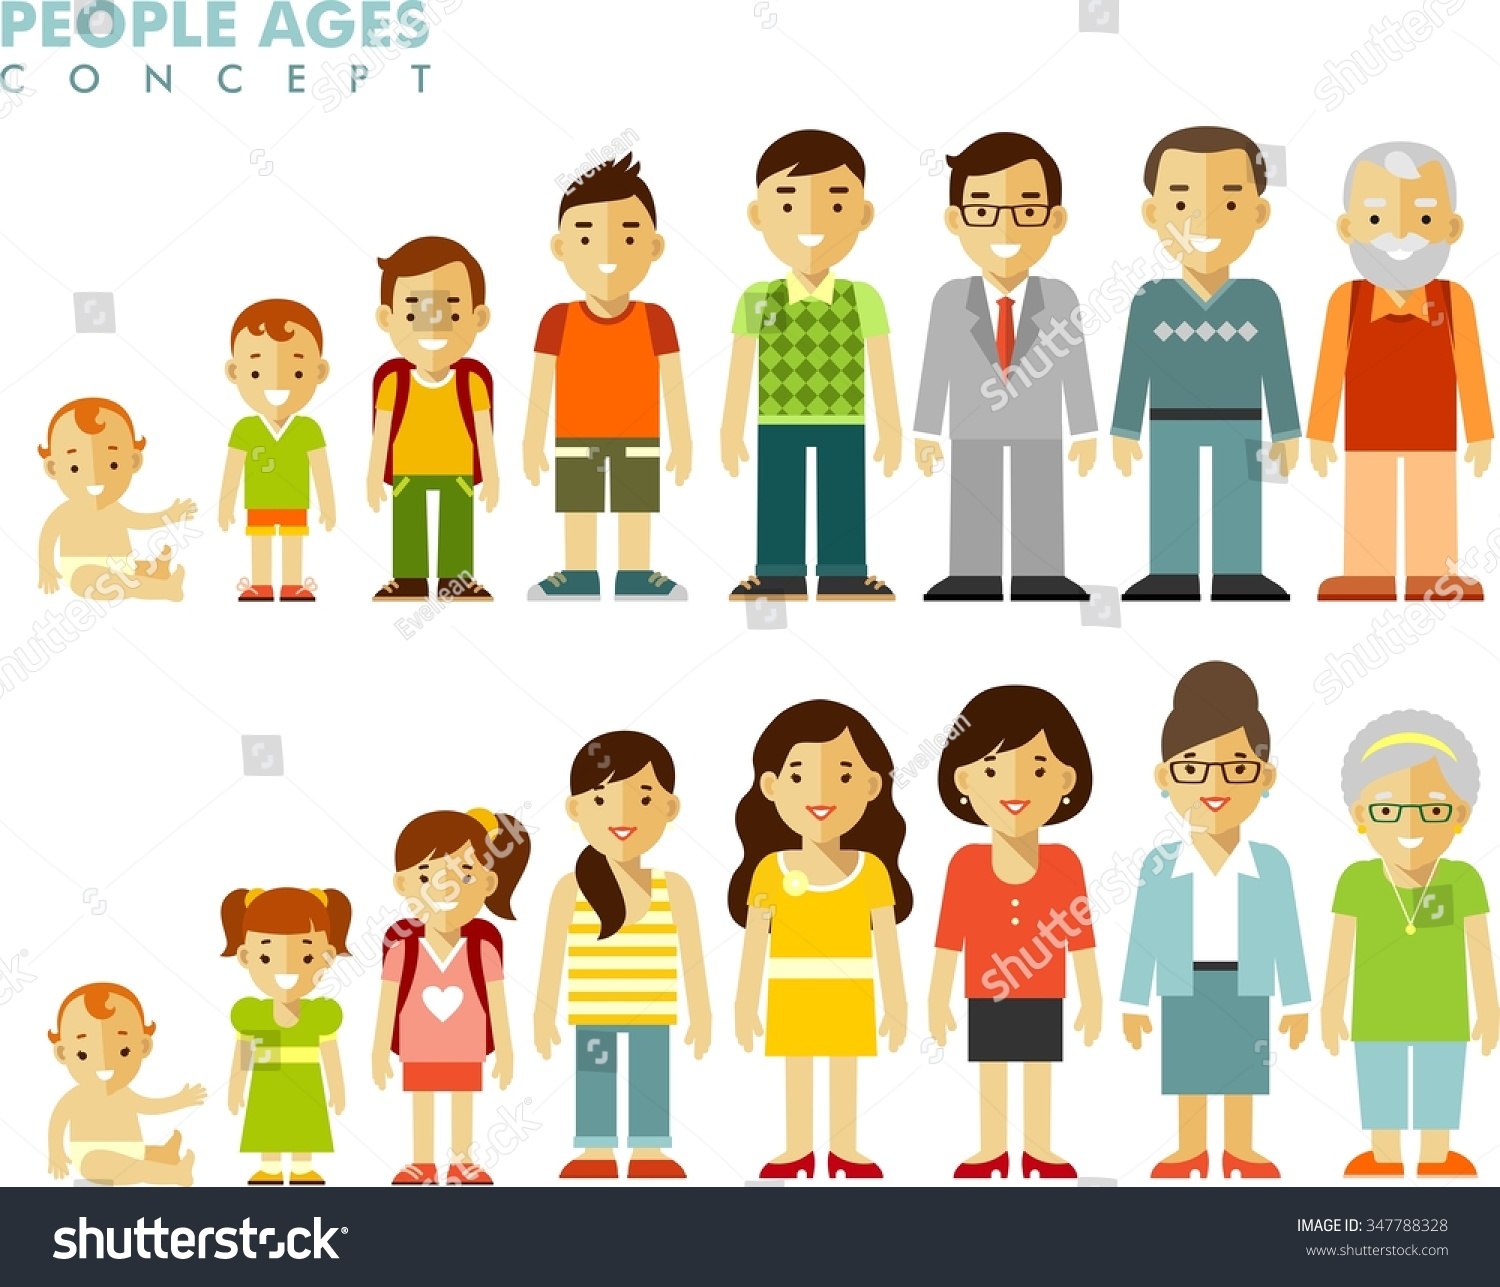 Stock Vector People Generations